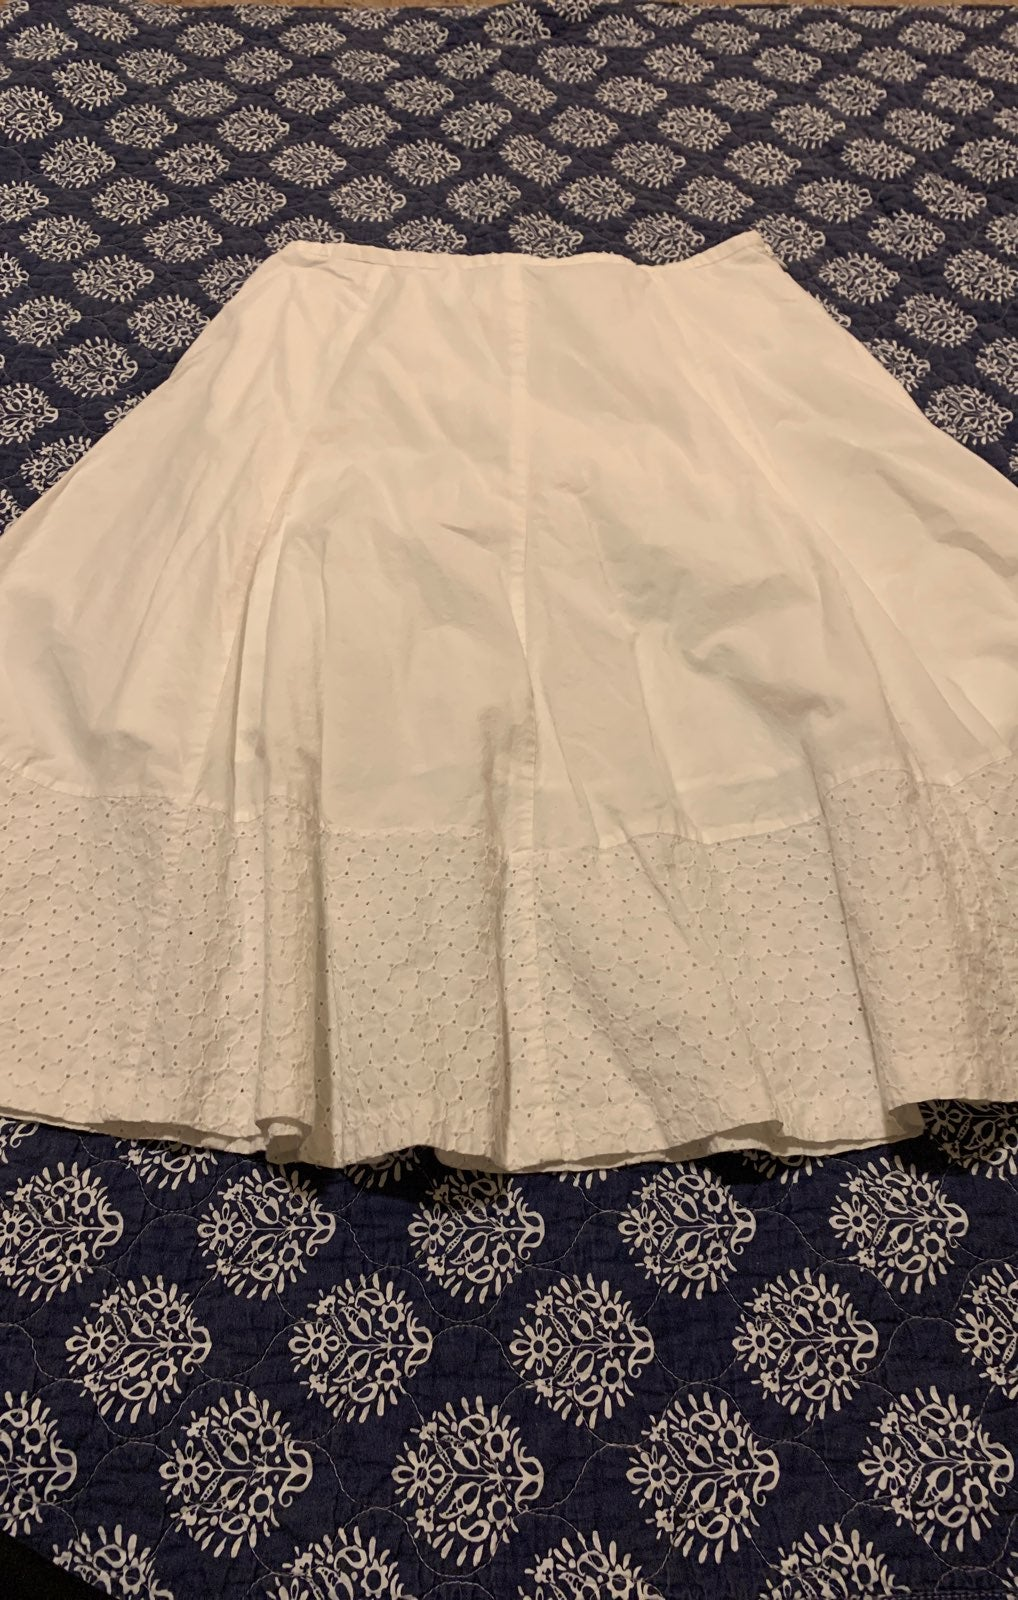 Apostrophe white skirt